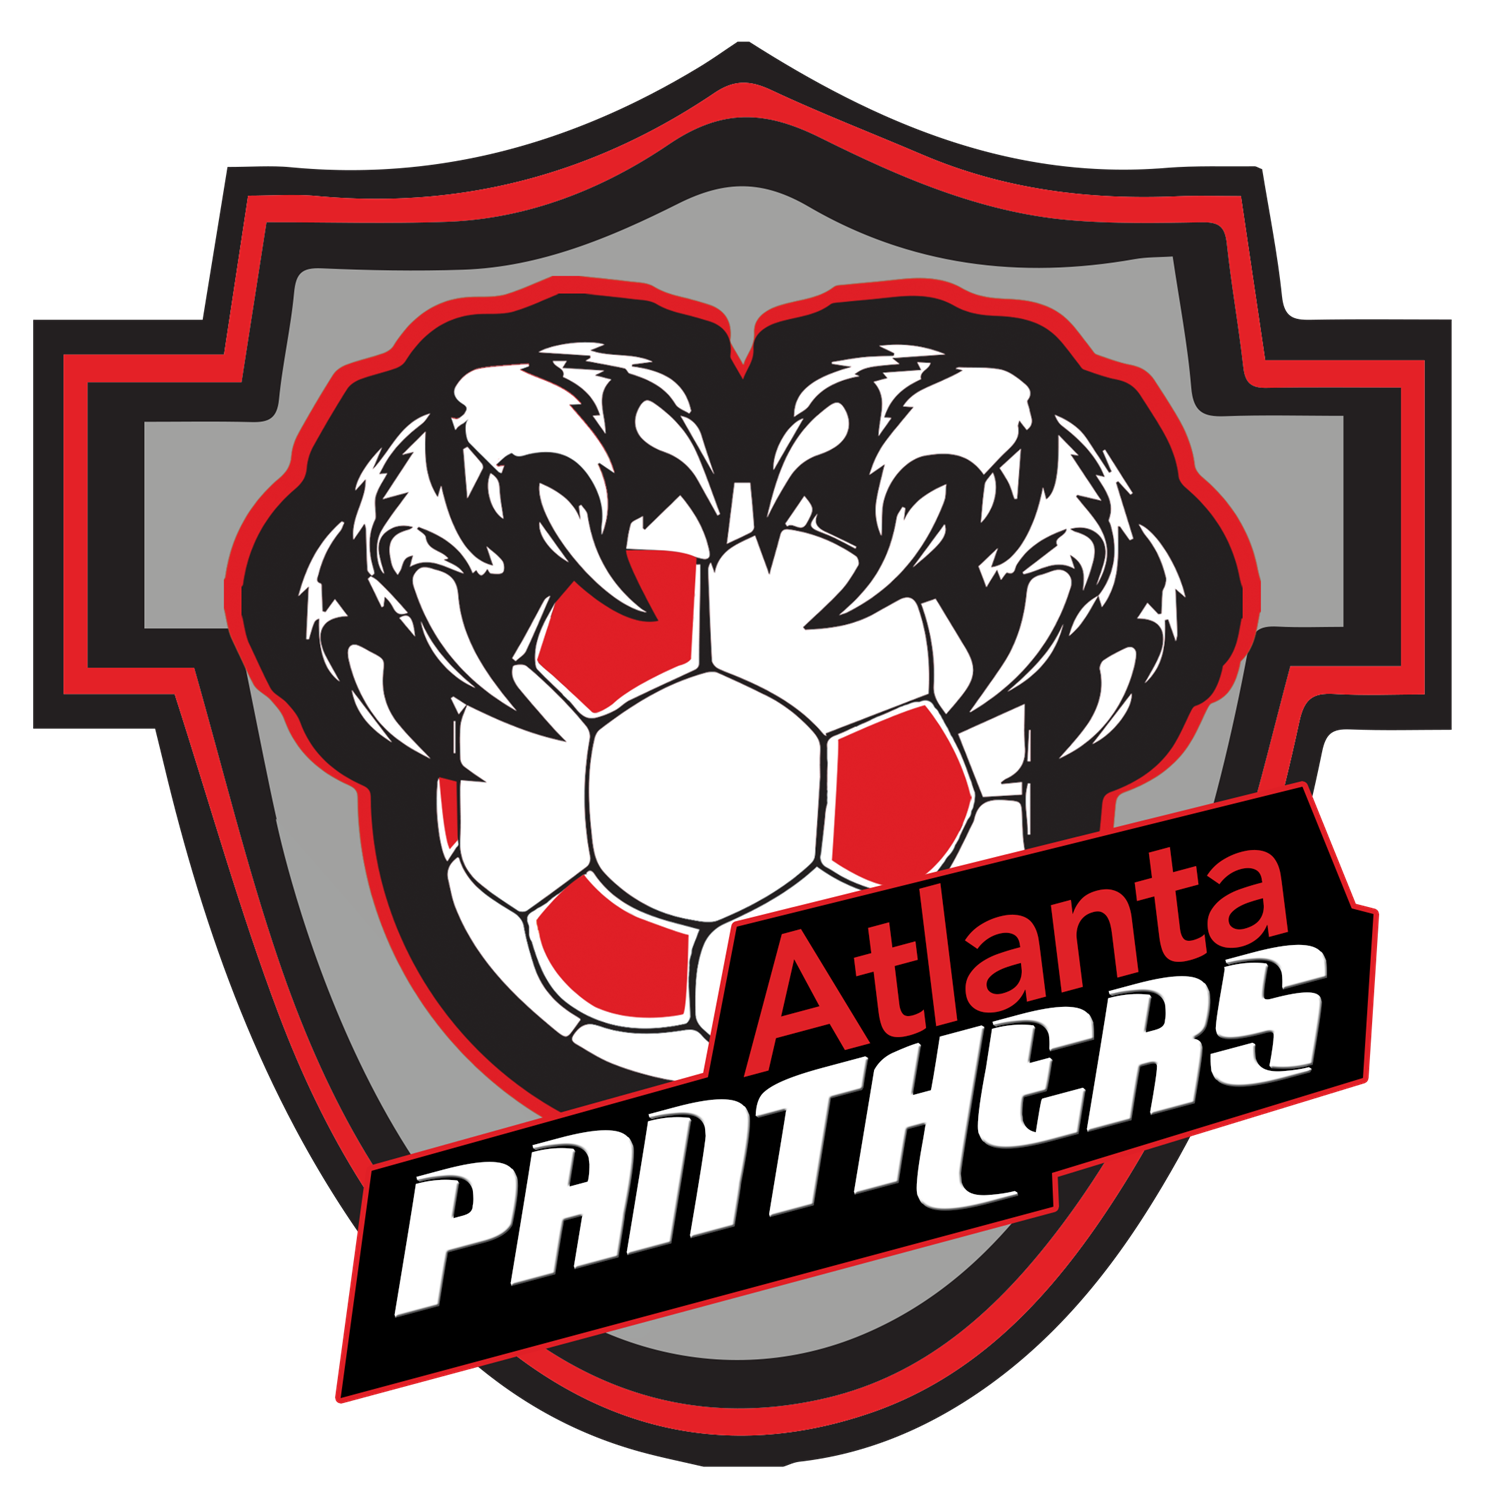 GENERAL ADMISSION  on may. 22, 19:00@GENERAL ADMISSION - Buy tickets and Get information on www.atlantapanthersoccer.com